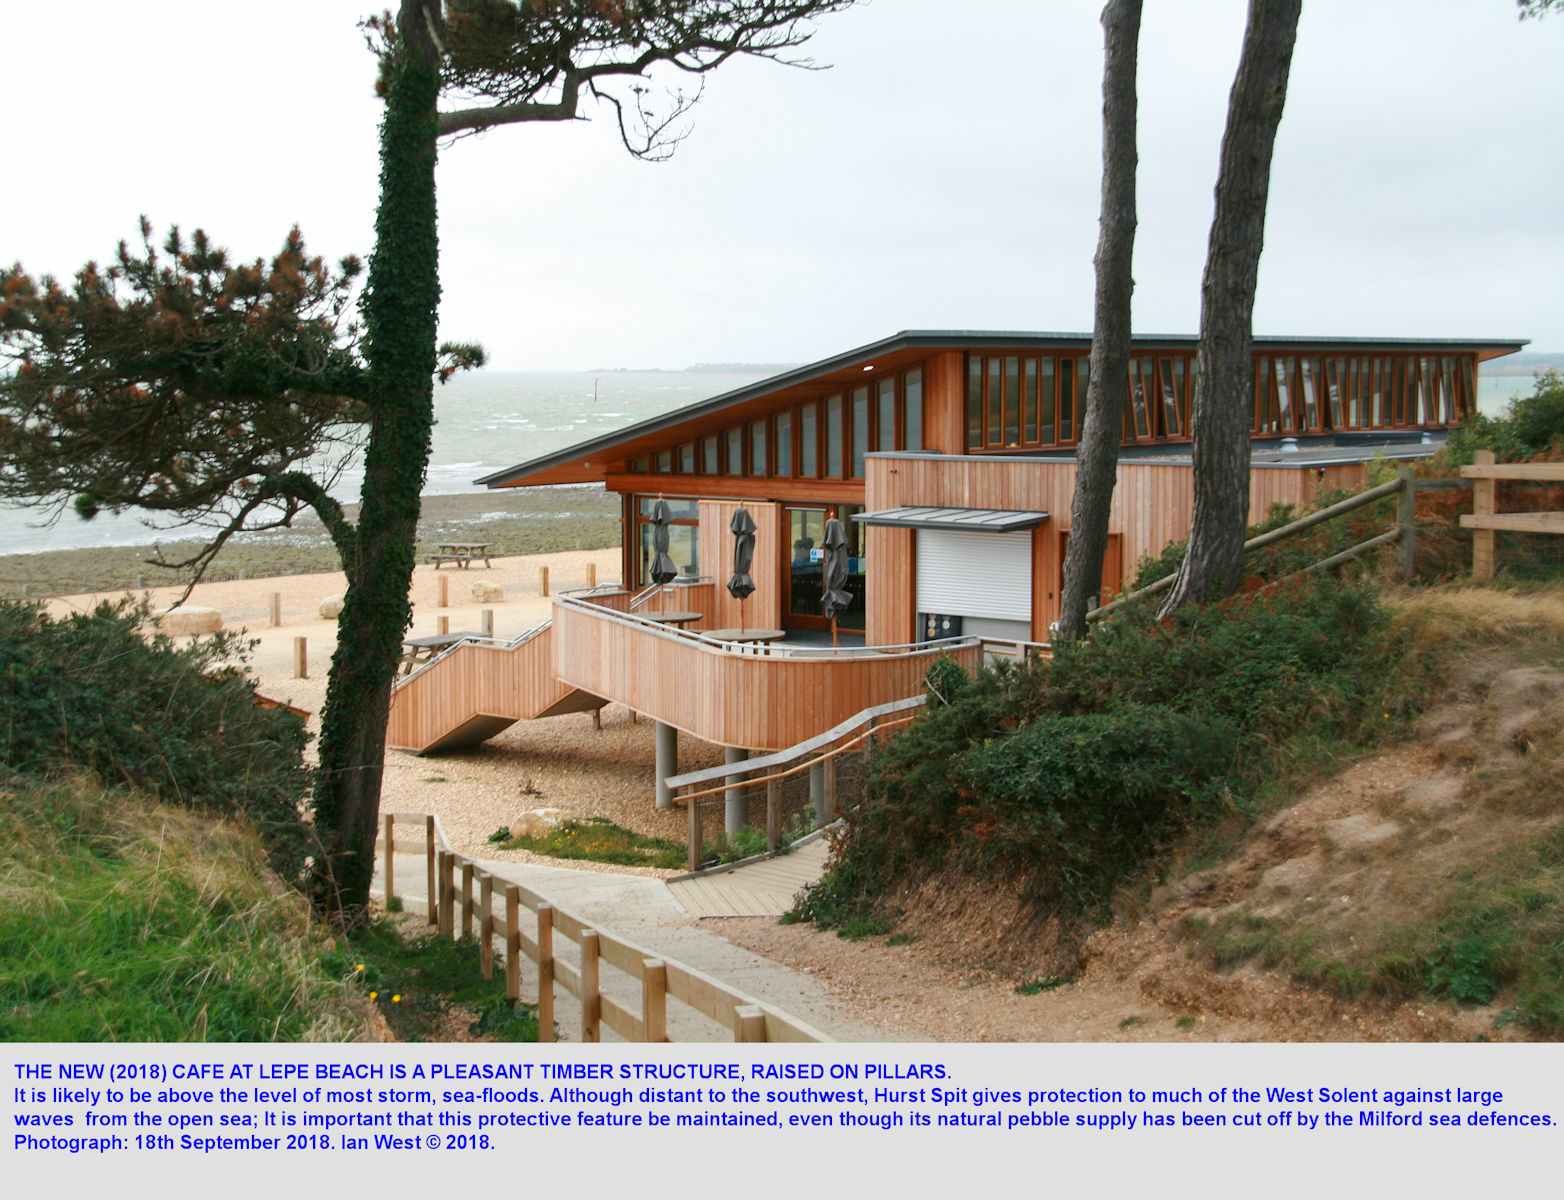 Arriving at Lepe Beach, upper car park and descending to the shore adjacent to the new cafe, as in 2018